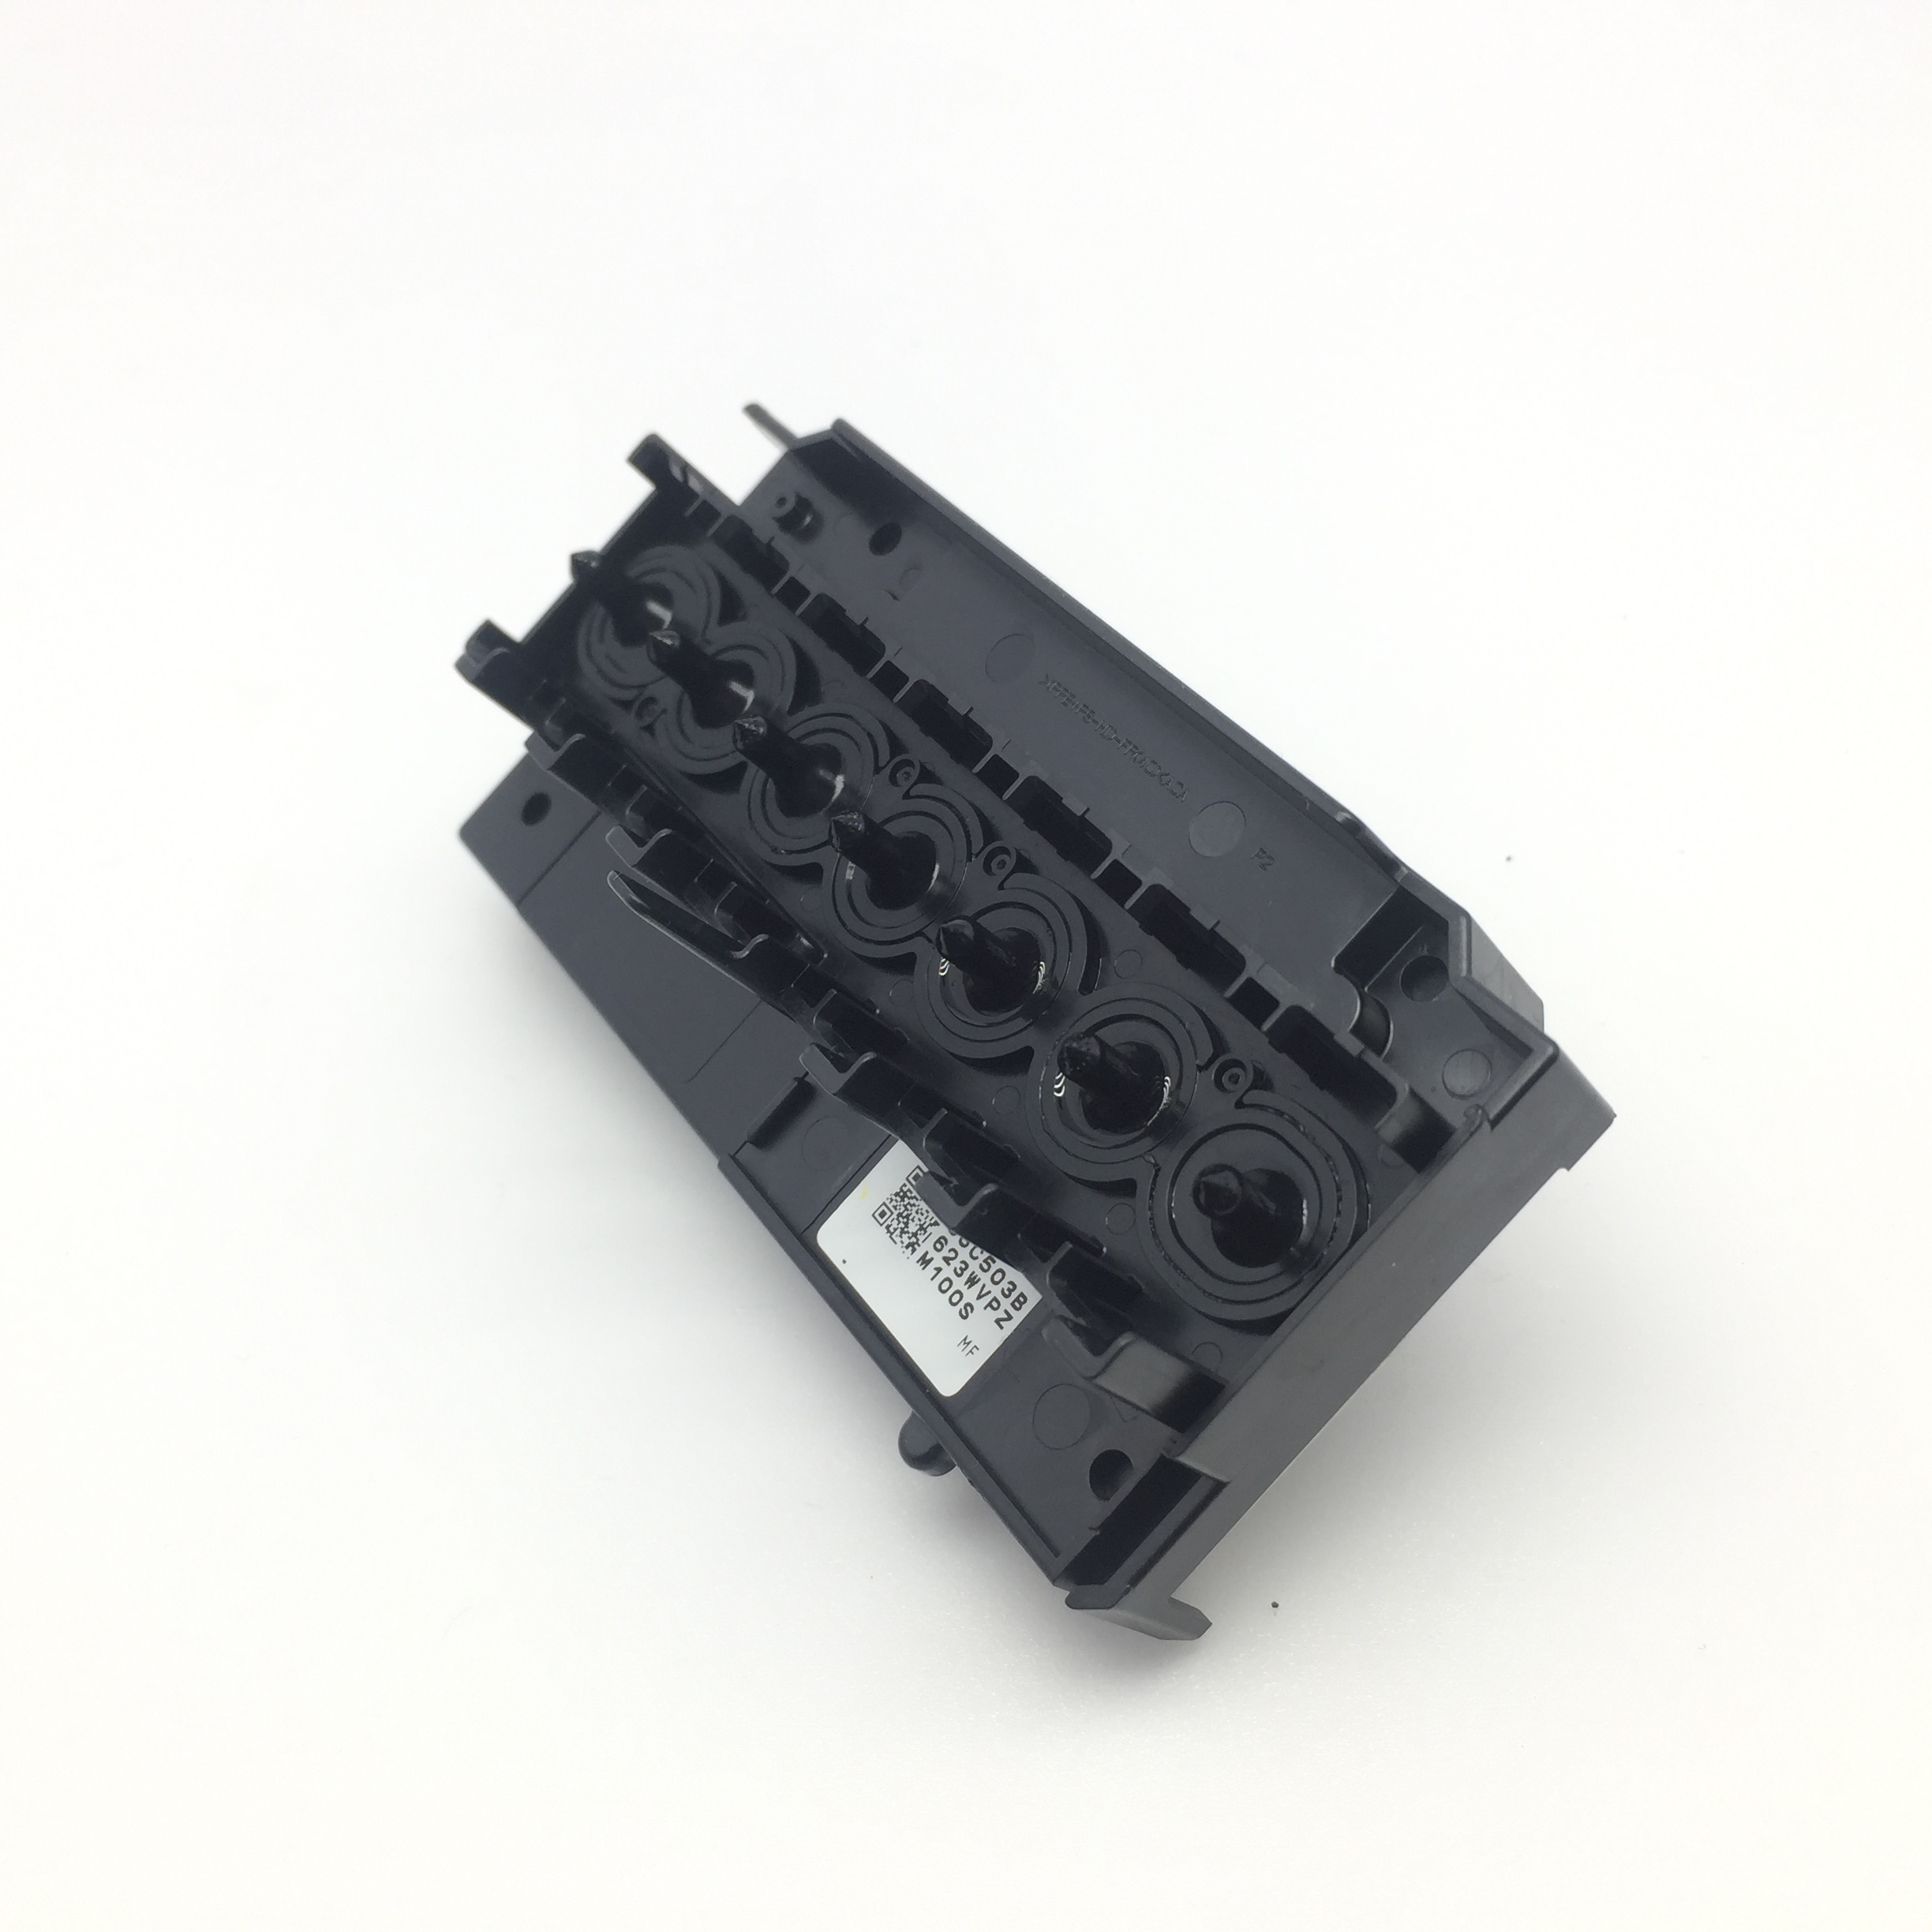 Truested seller! High quality and cheaper cost Printhead For Epson 7600 printhead For EPSON 9600 Print head For Epson Printhead